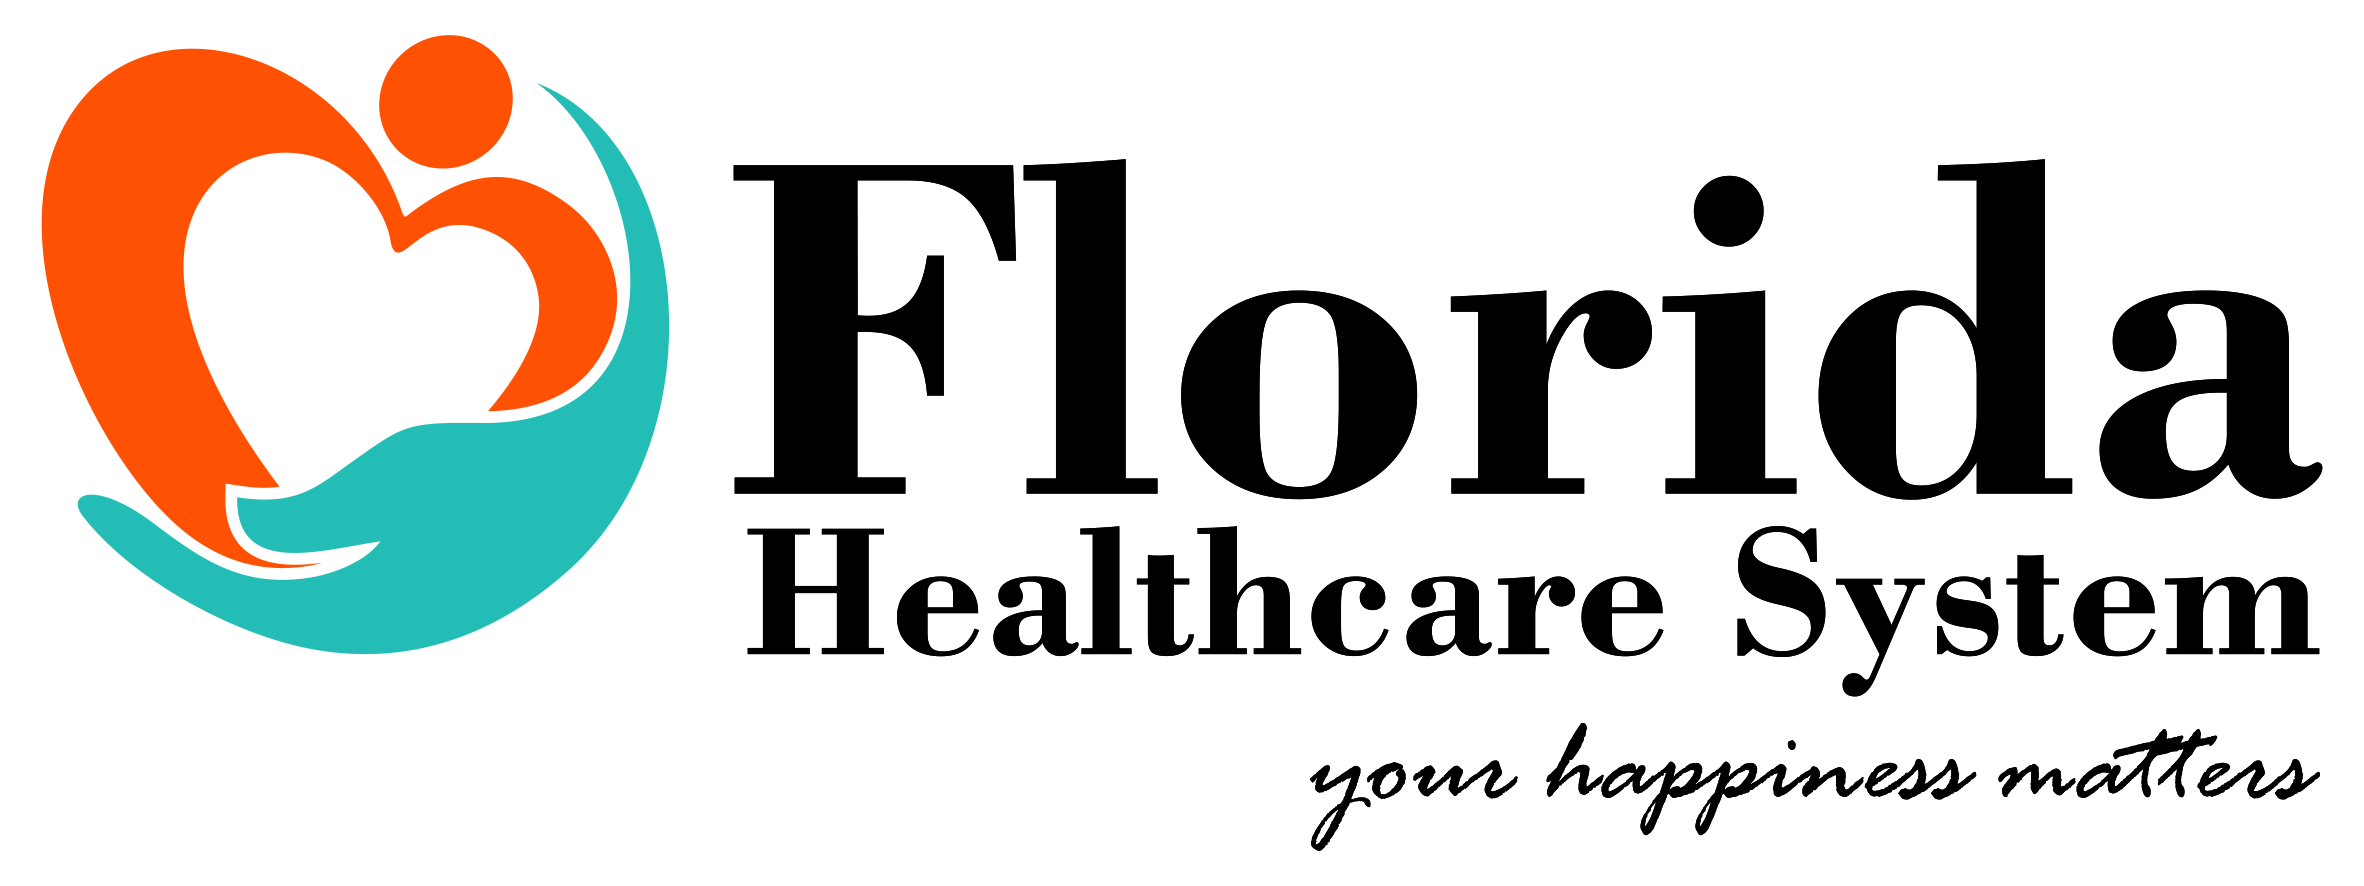 Florida Healthcare System